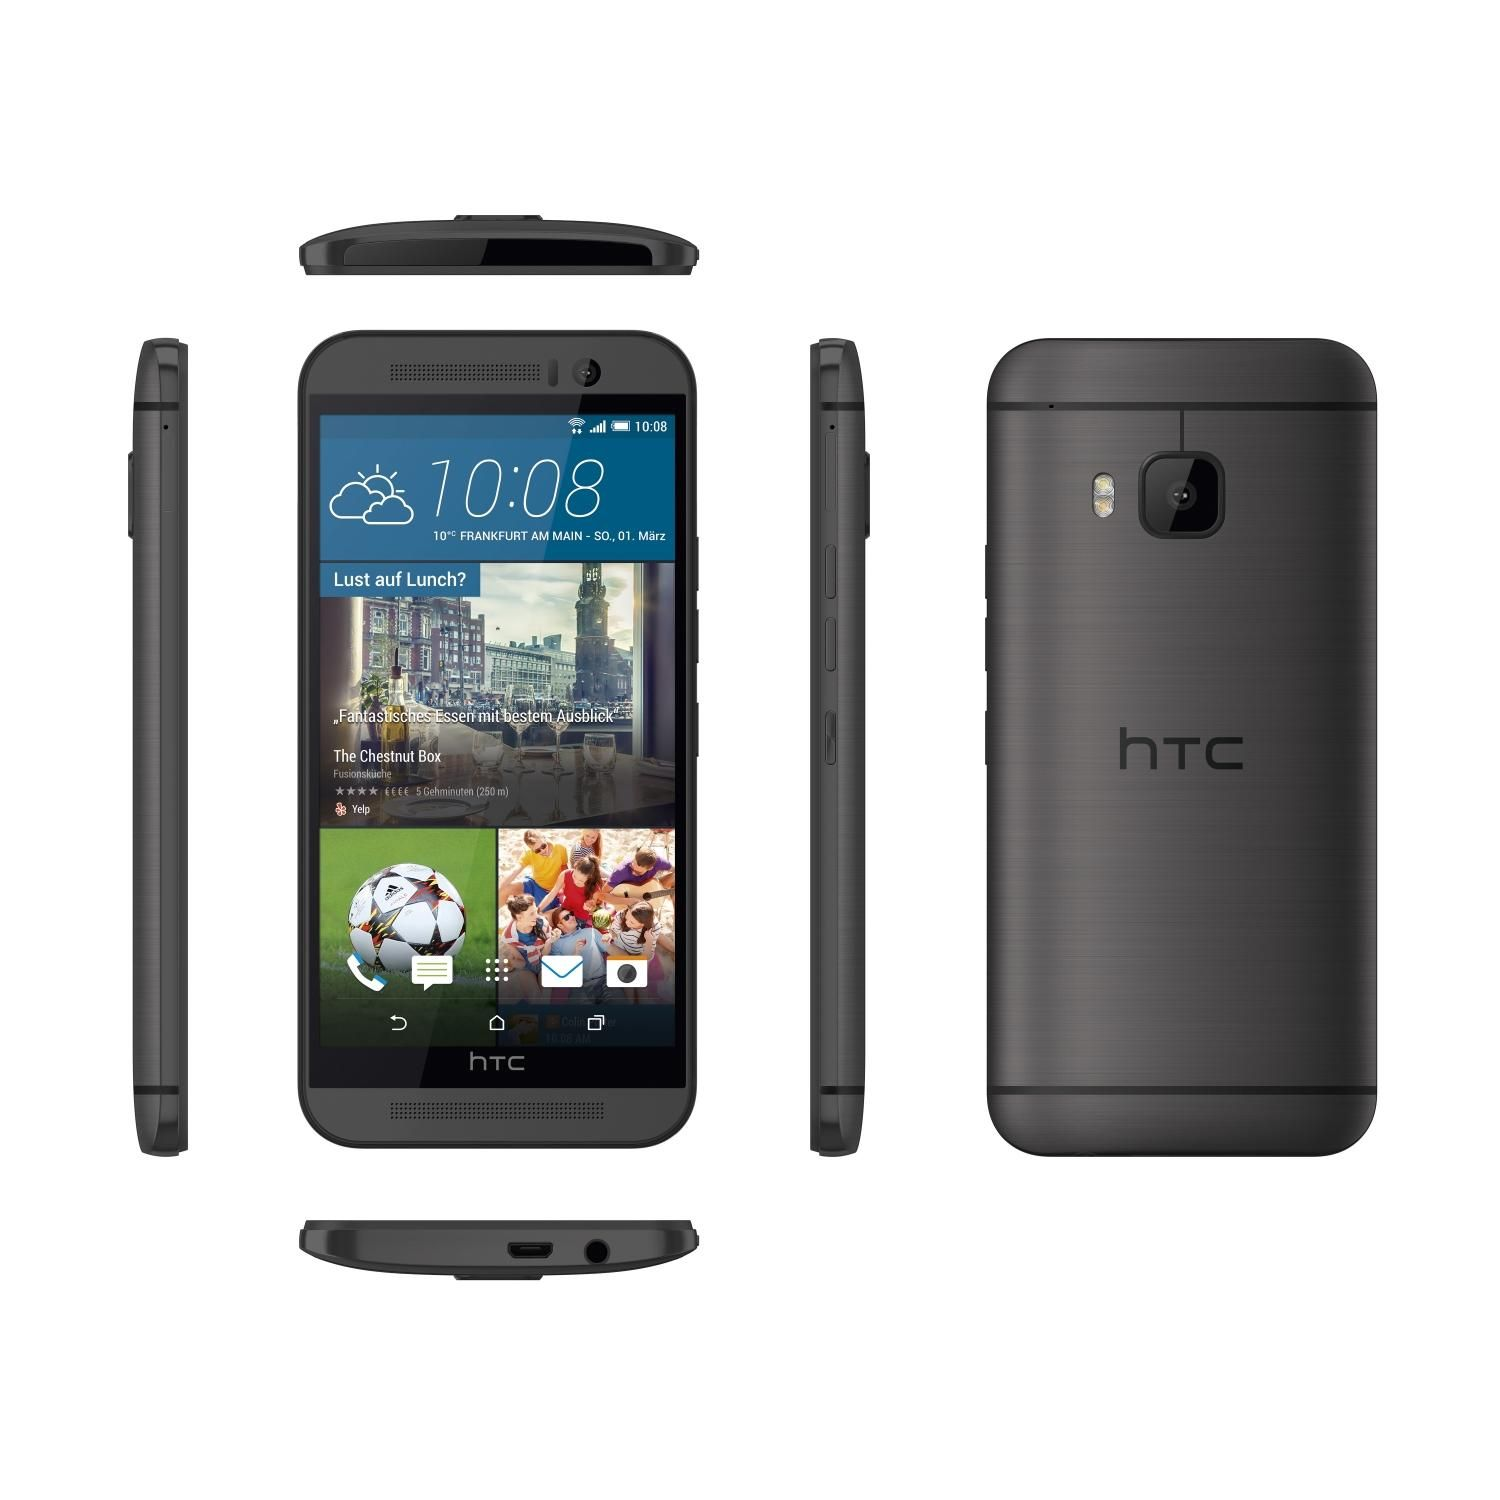 sprint htc cell phones for sale away from